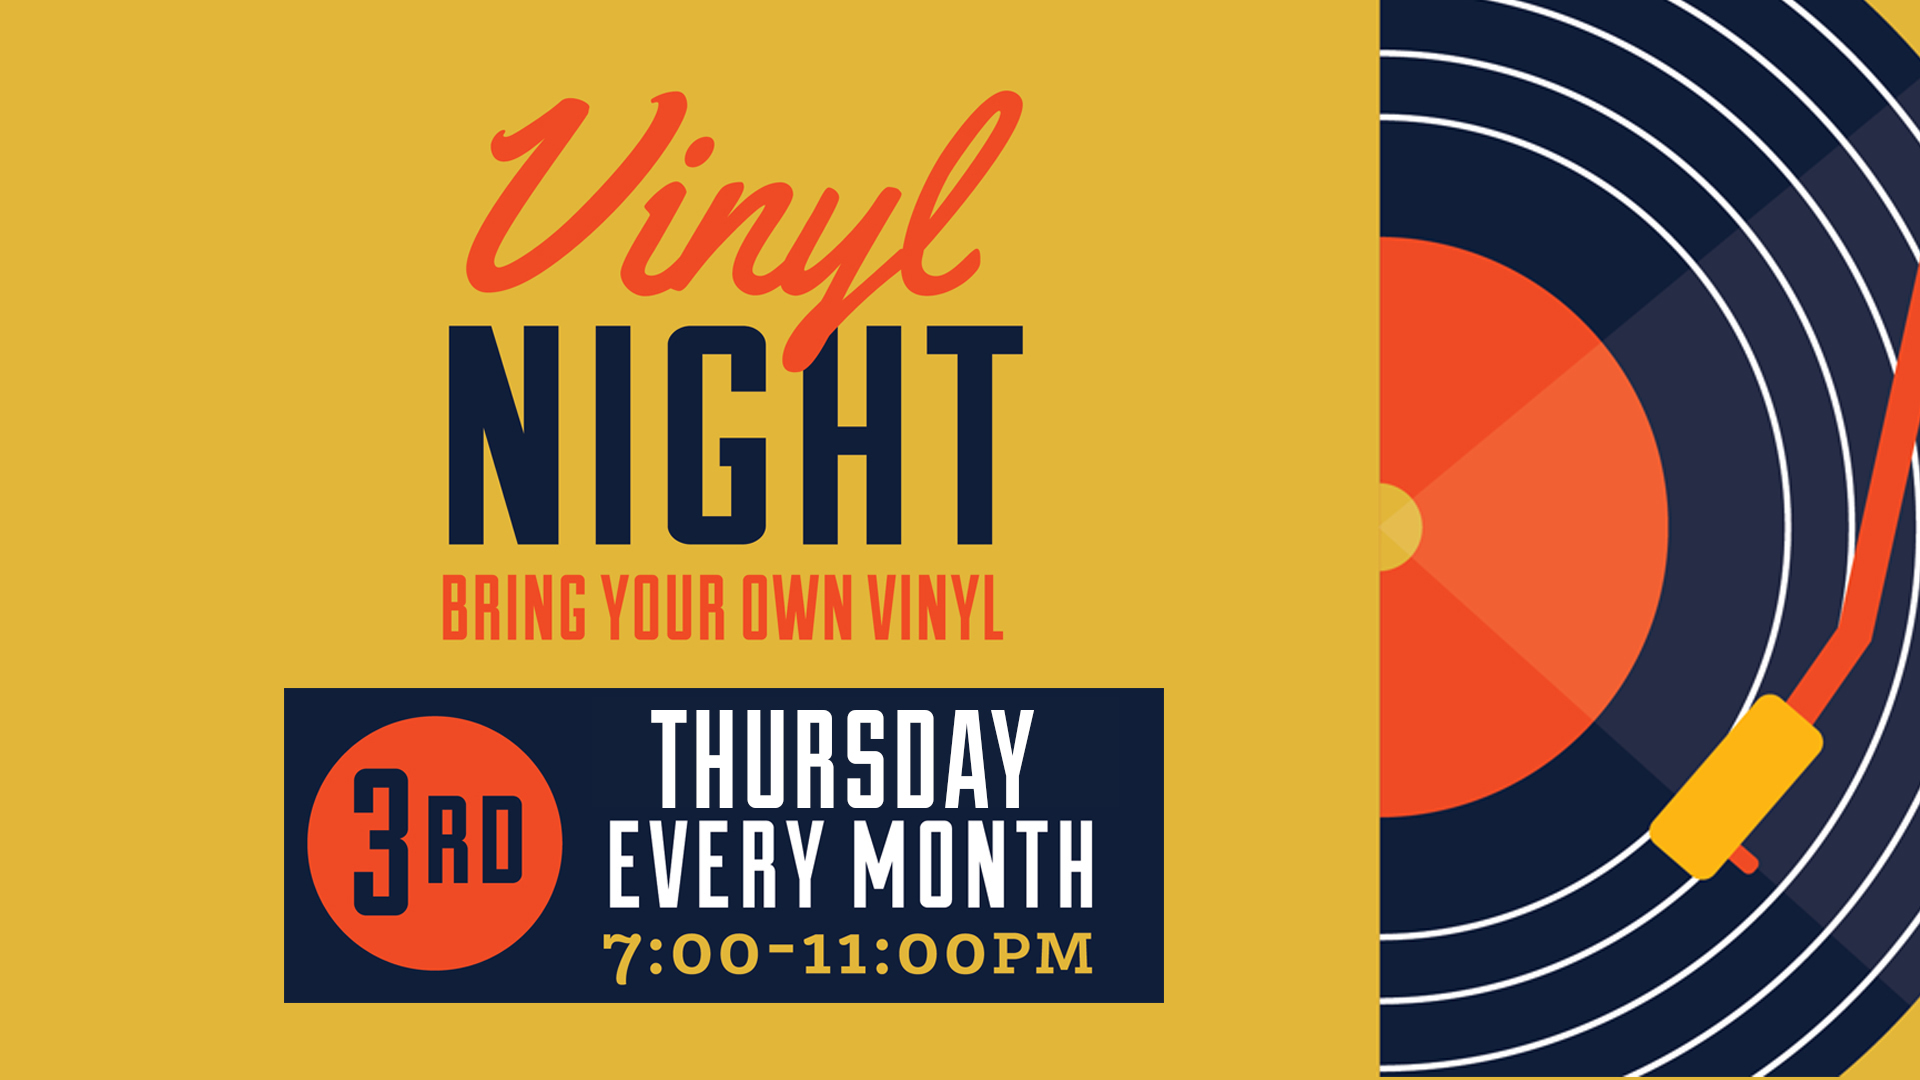 In partnership with  Landlocked Music  and  Secretly Distribution  grab your wax and join us for a special BYOV featuring guest DJs from Secretly & Landlocked!   BYOV and help curate the night's playlist and stick around for a chance to win a $25 Landlocked gift card to help build your collection!